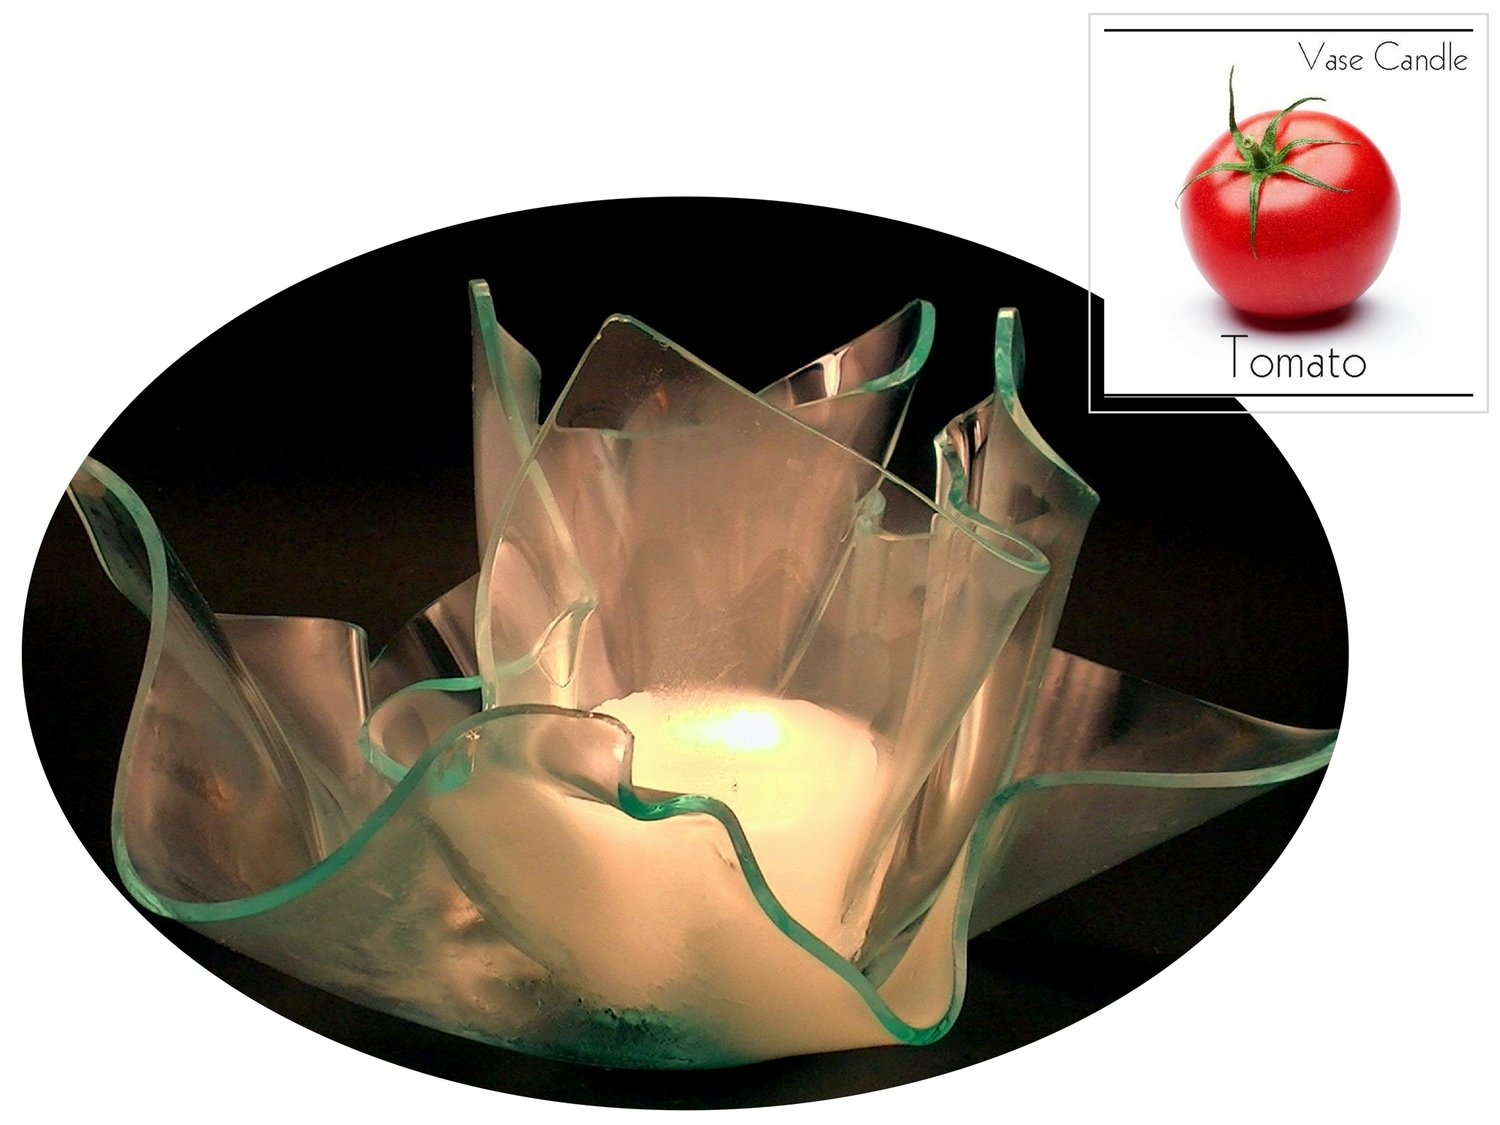 2 Tomato Candle Refills | Clear Satin Vase & Dish Set